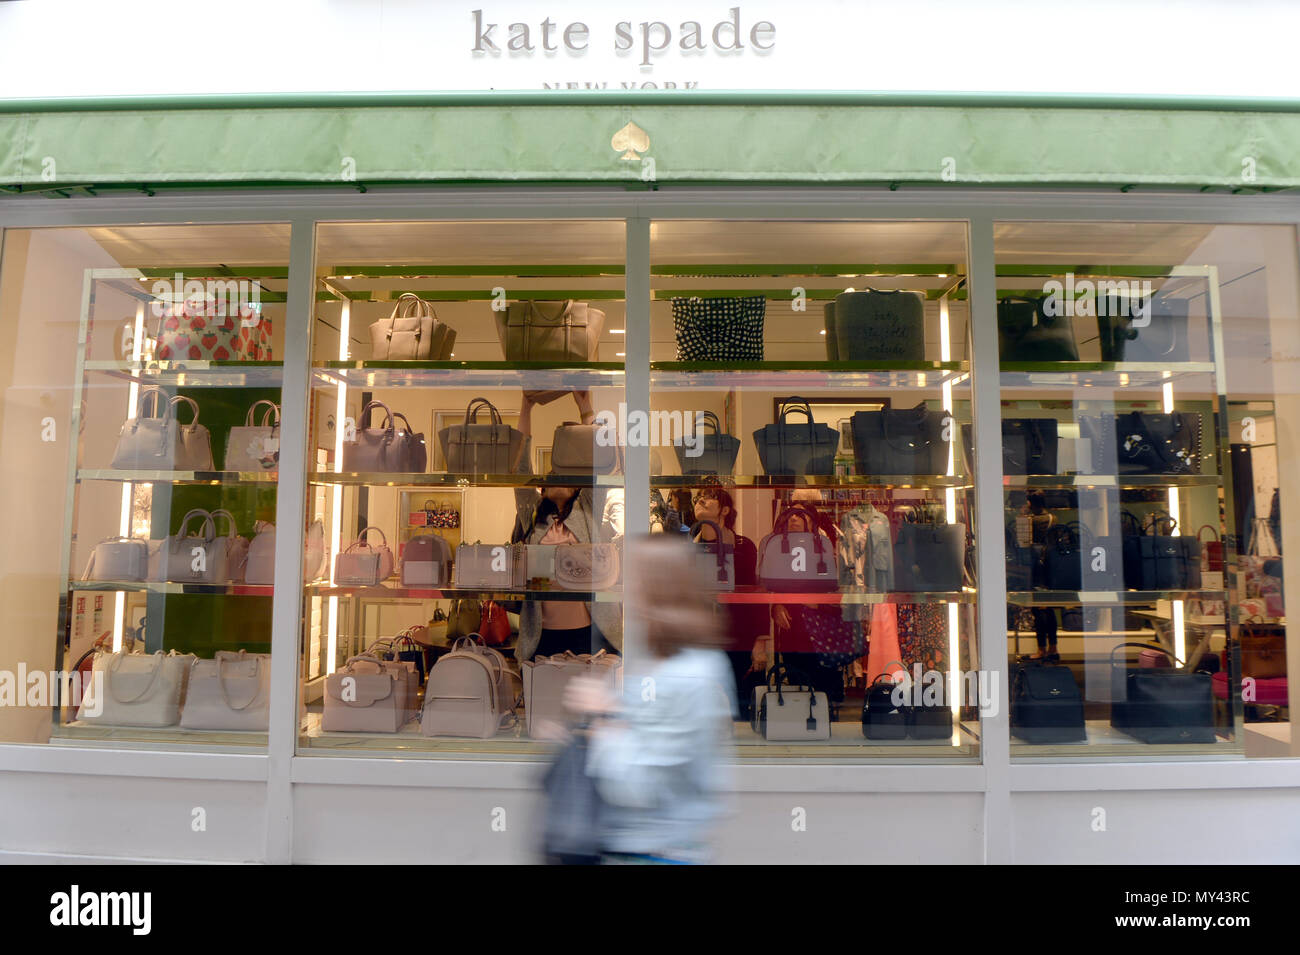 A Kate Spade Shop In London The American Fashion Designer Kate Spade 55 Was Found Dead In Her Apartment In New York On Tuesday Following An Apparent Suicide Law Enforcement Officials Said